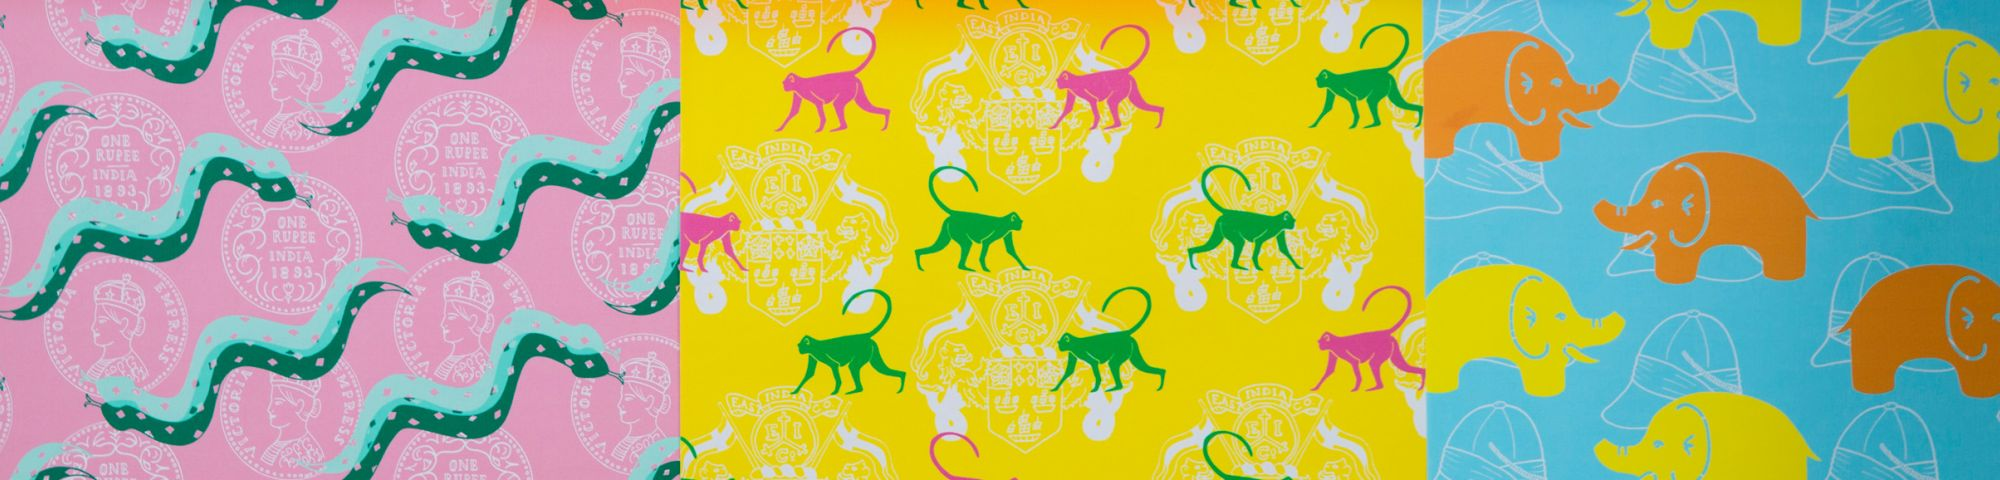 Colourful graphic print of snakes, monkeys and  elephants